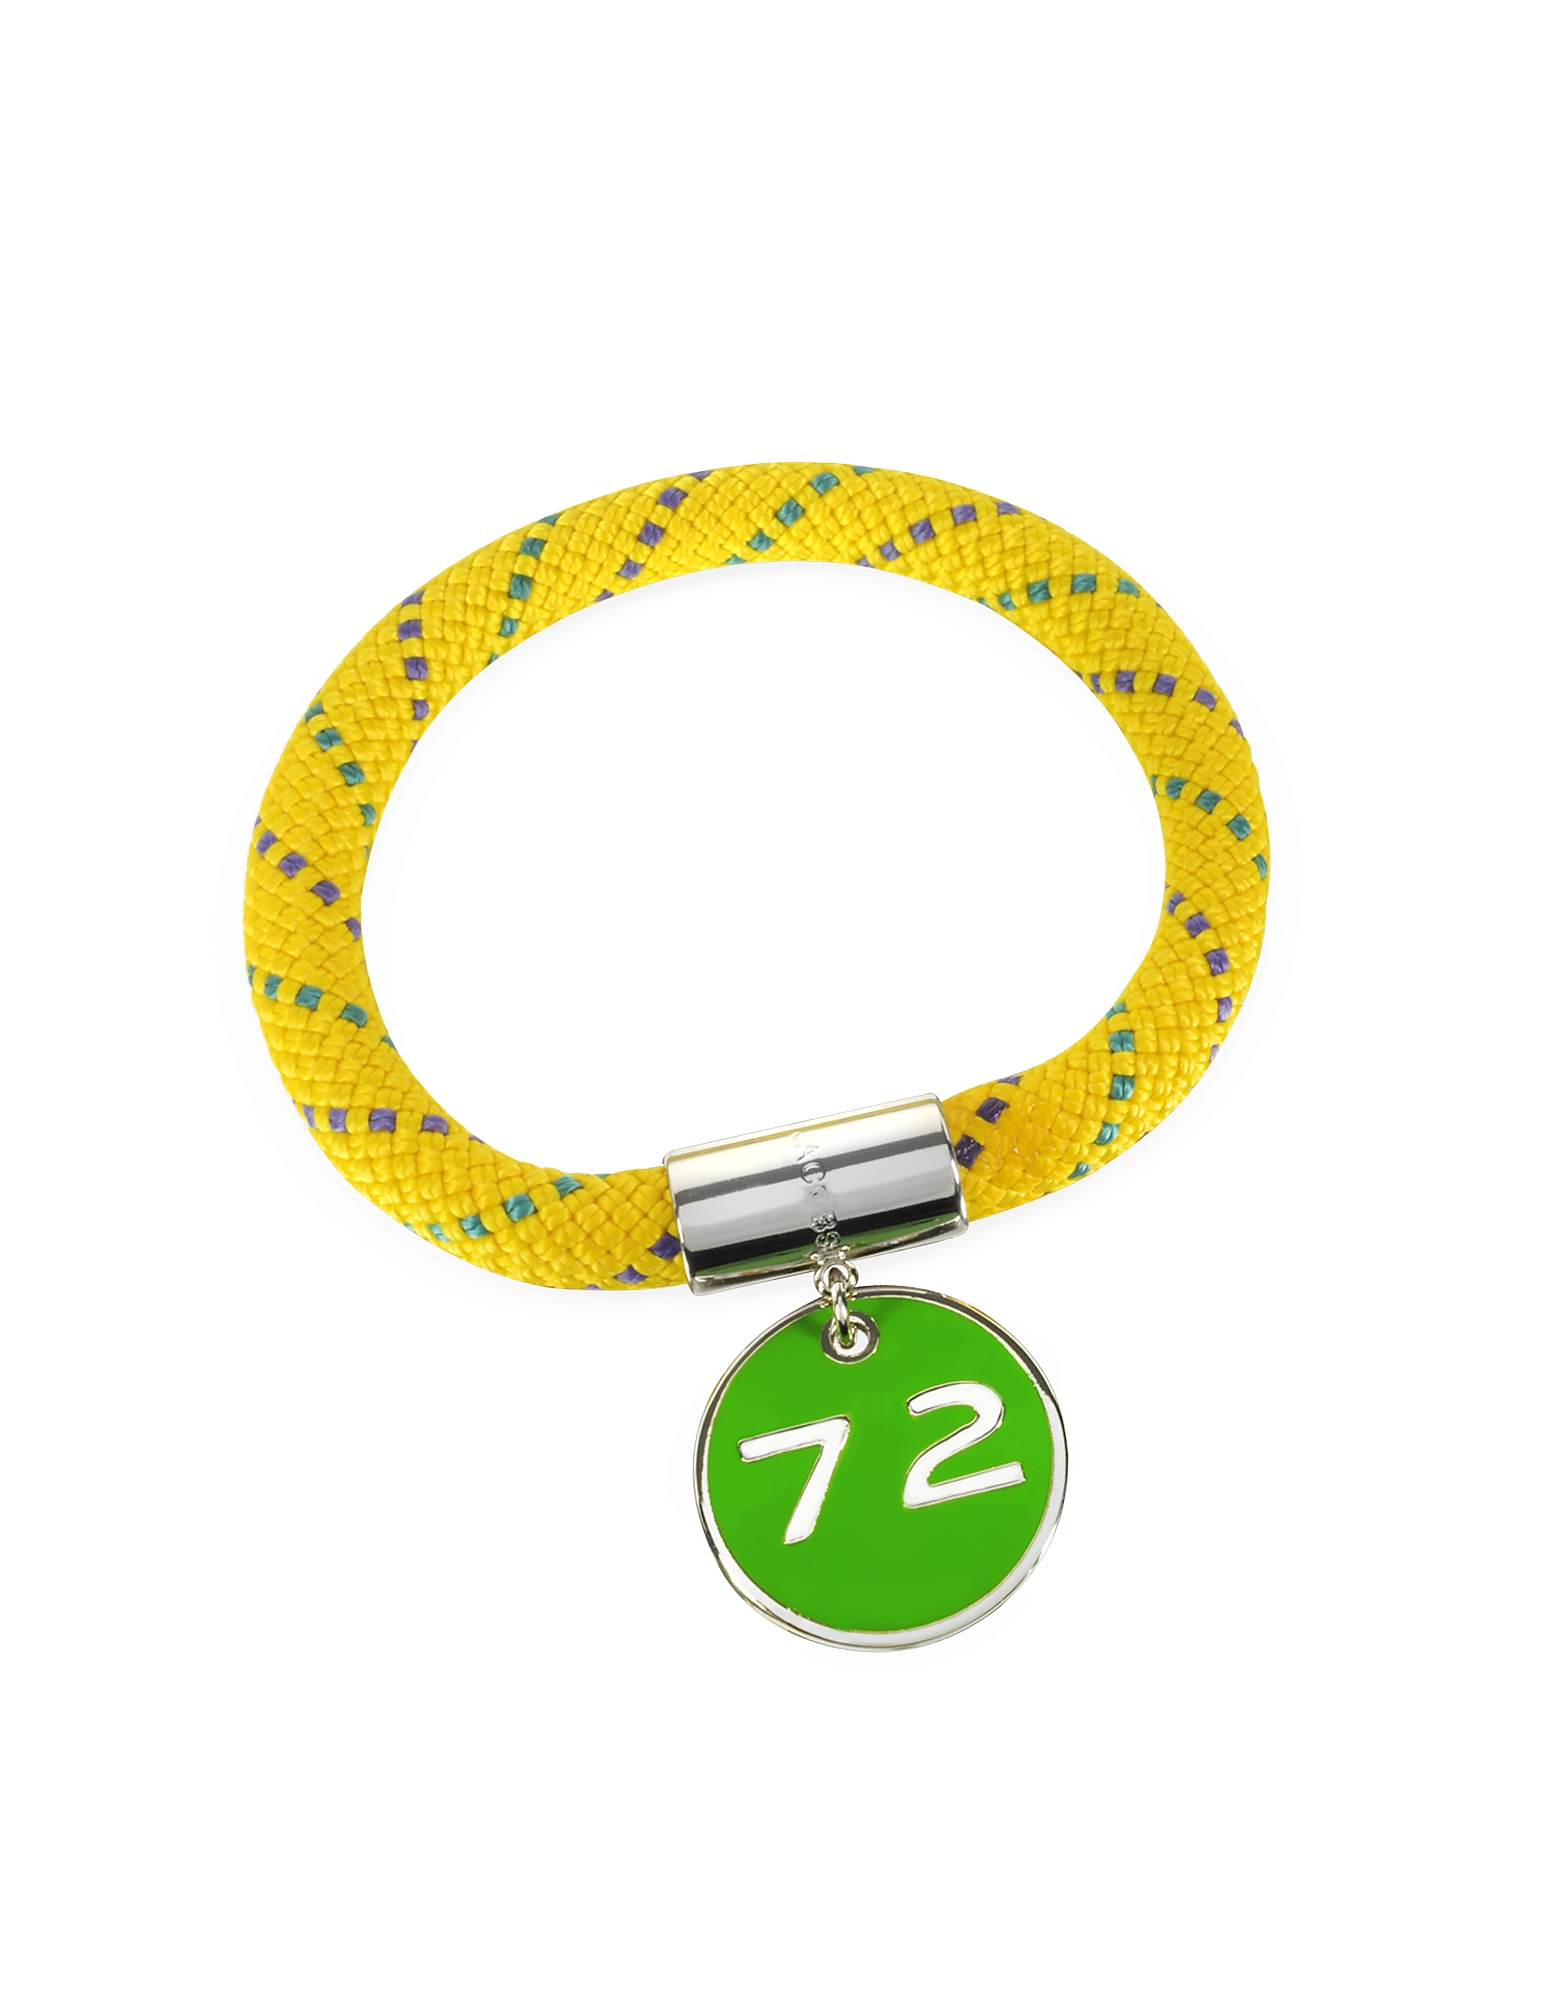 Marc by Marc Jacobs Bracelets, Yellow Nylon and Silvertone Brass 72 Location Bangle